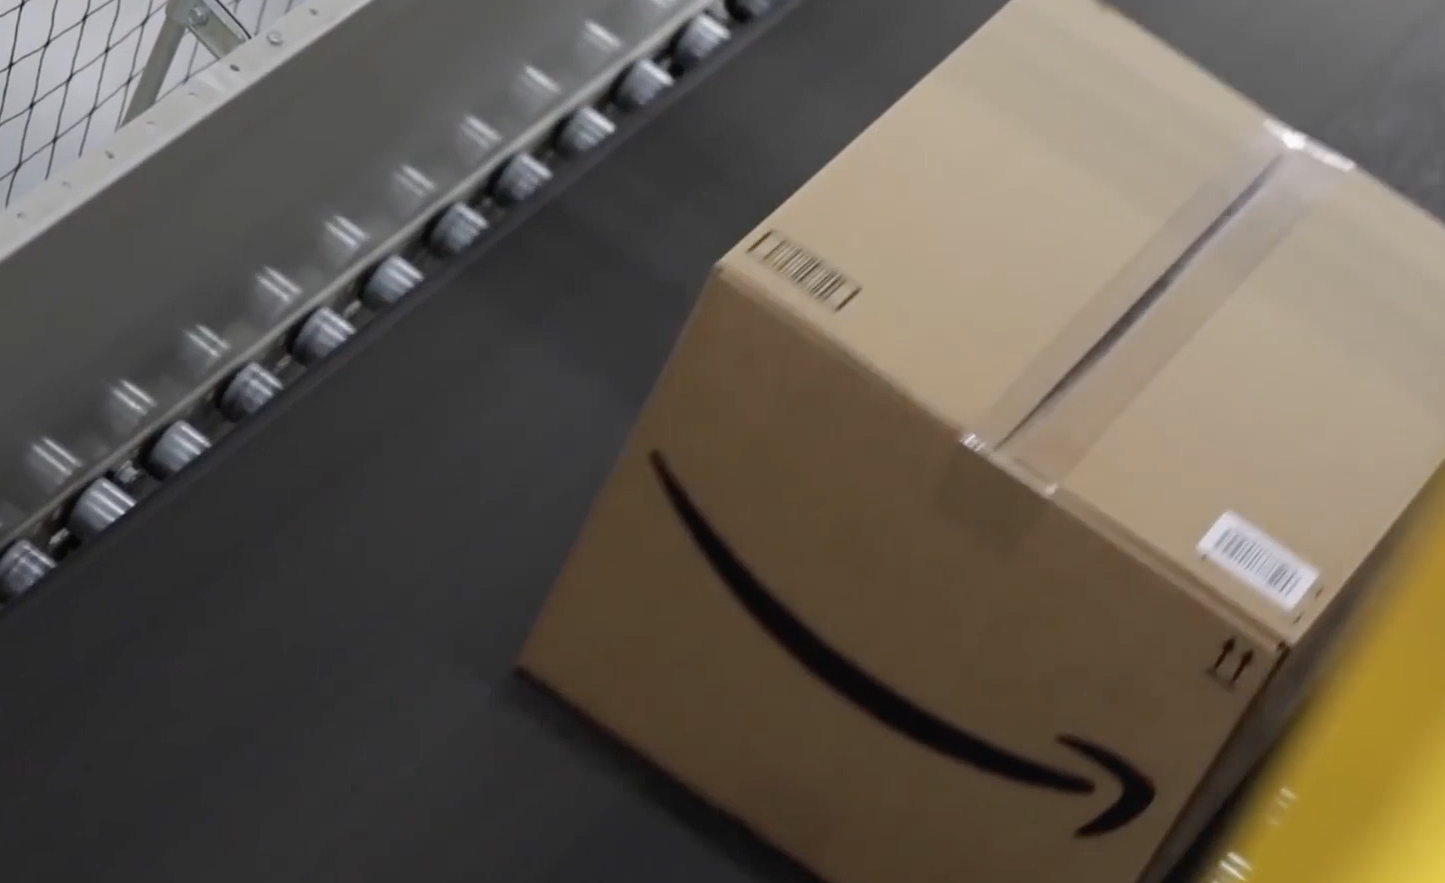 Video: When one-day shipping is the new normal